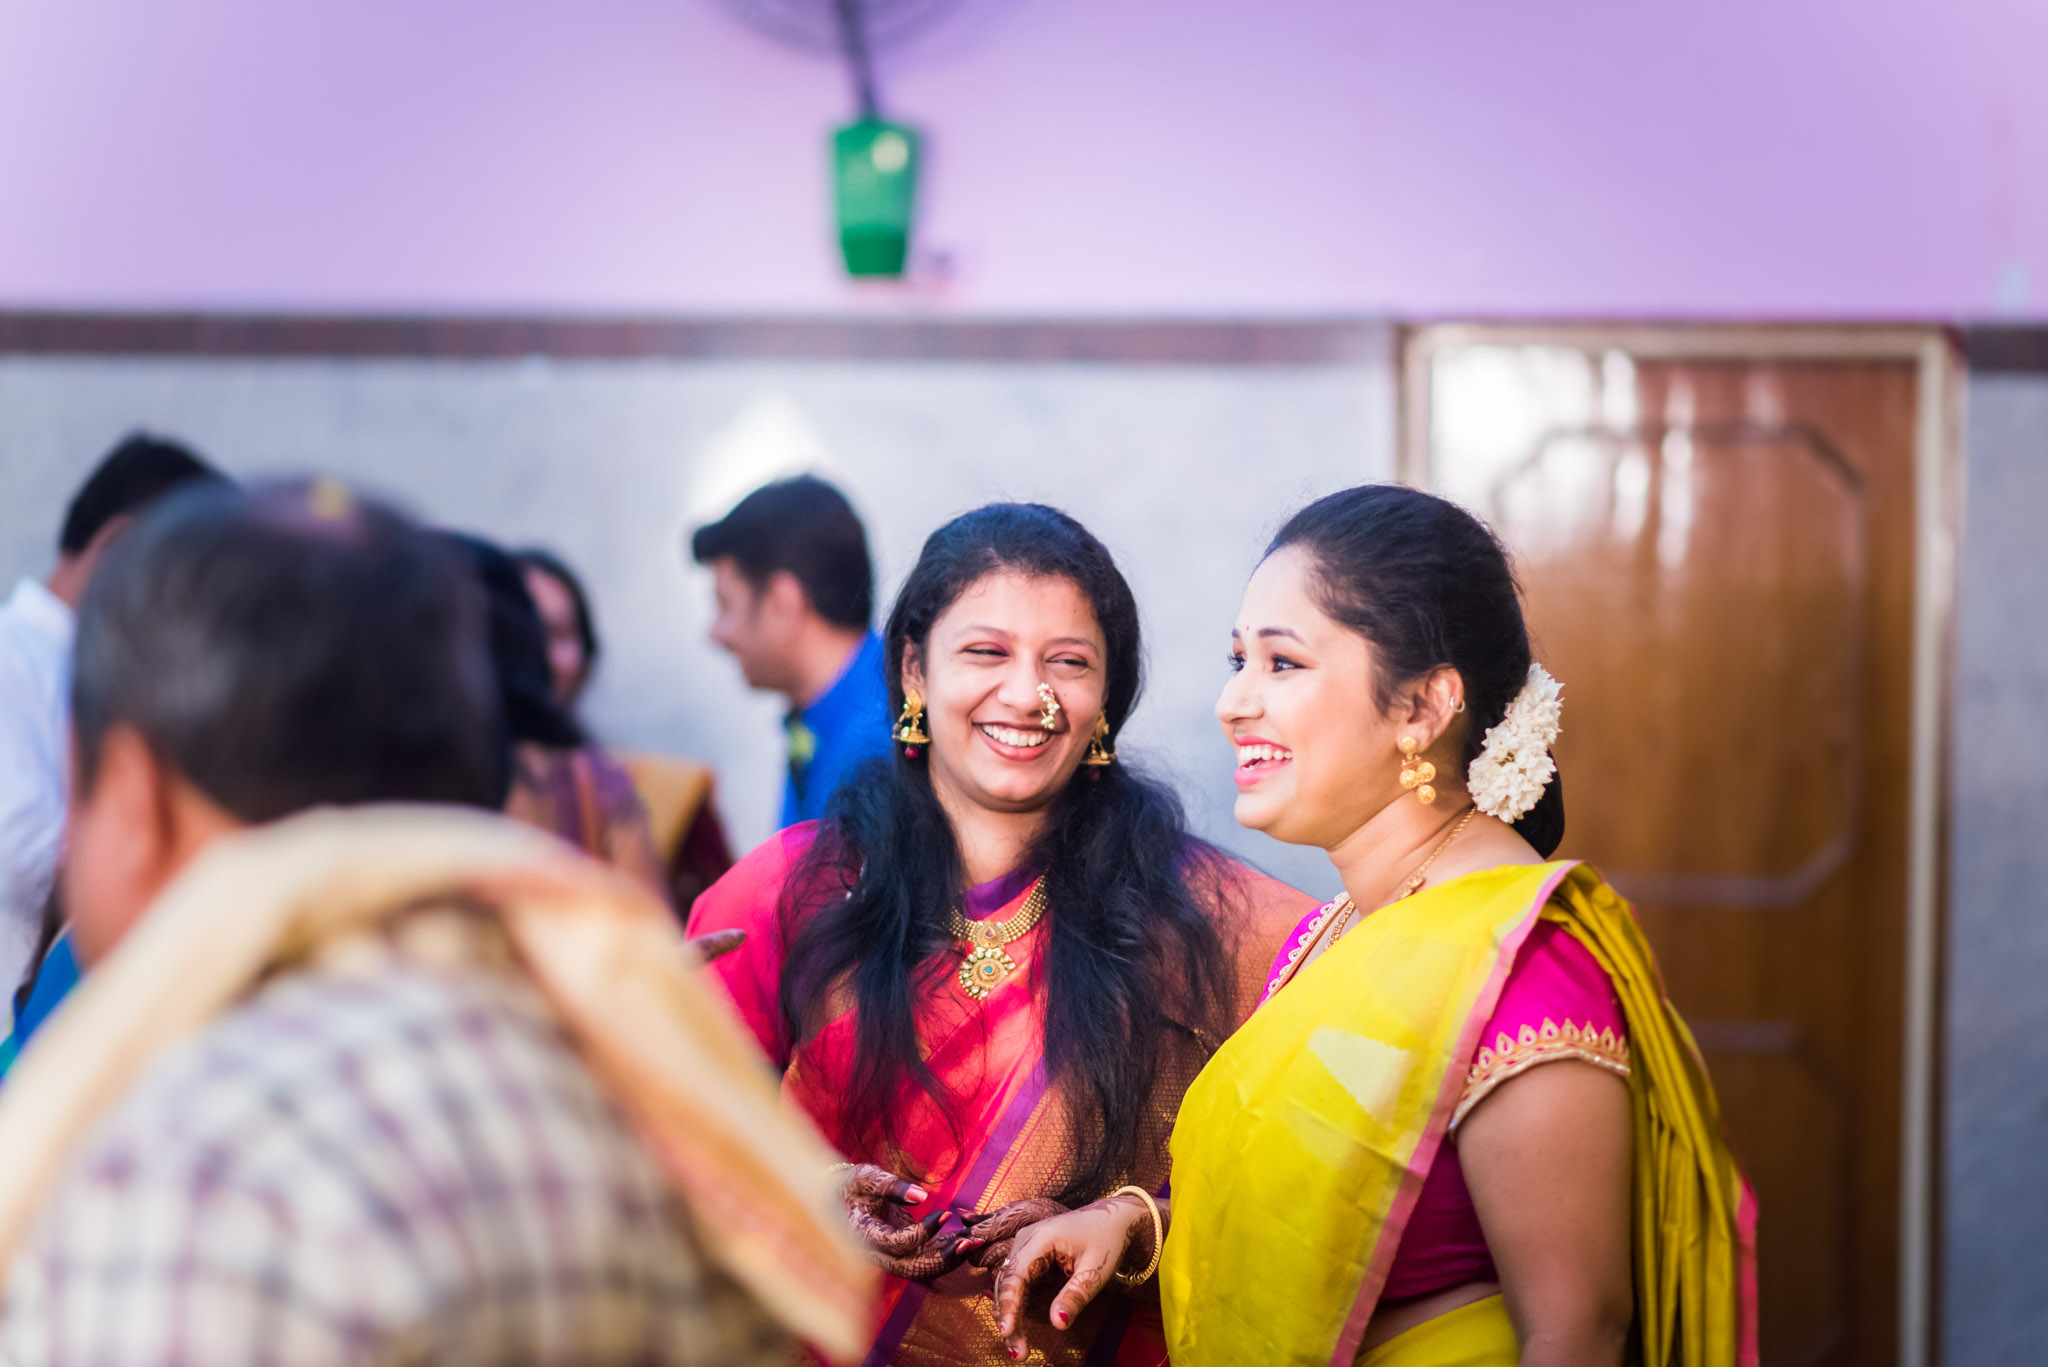 WhatKnot-Candid-Wedding-Photography-Mumbai-Bangalore-252